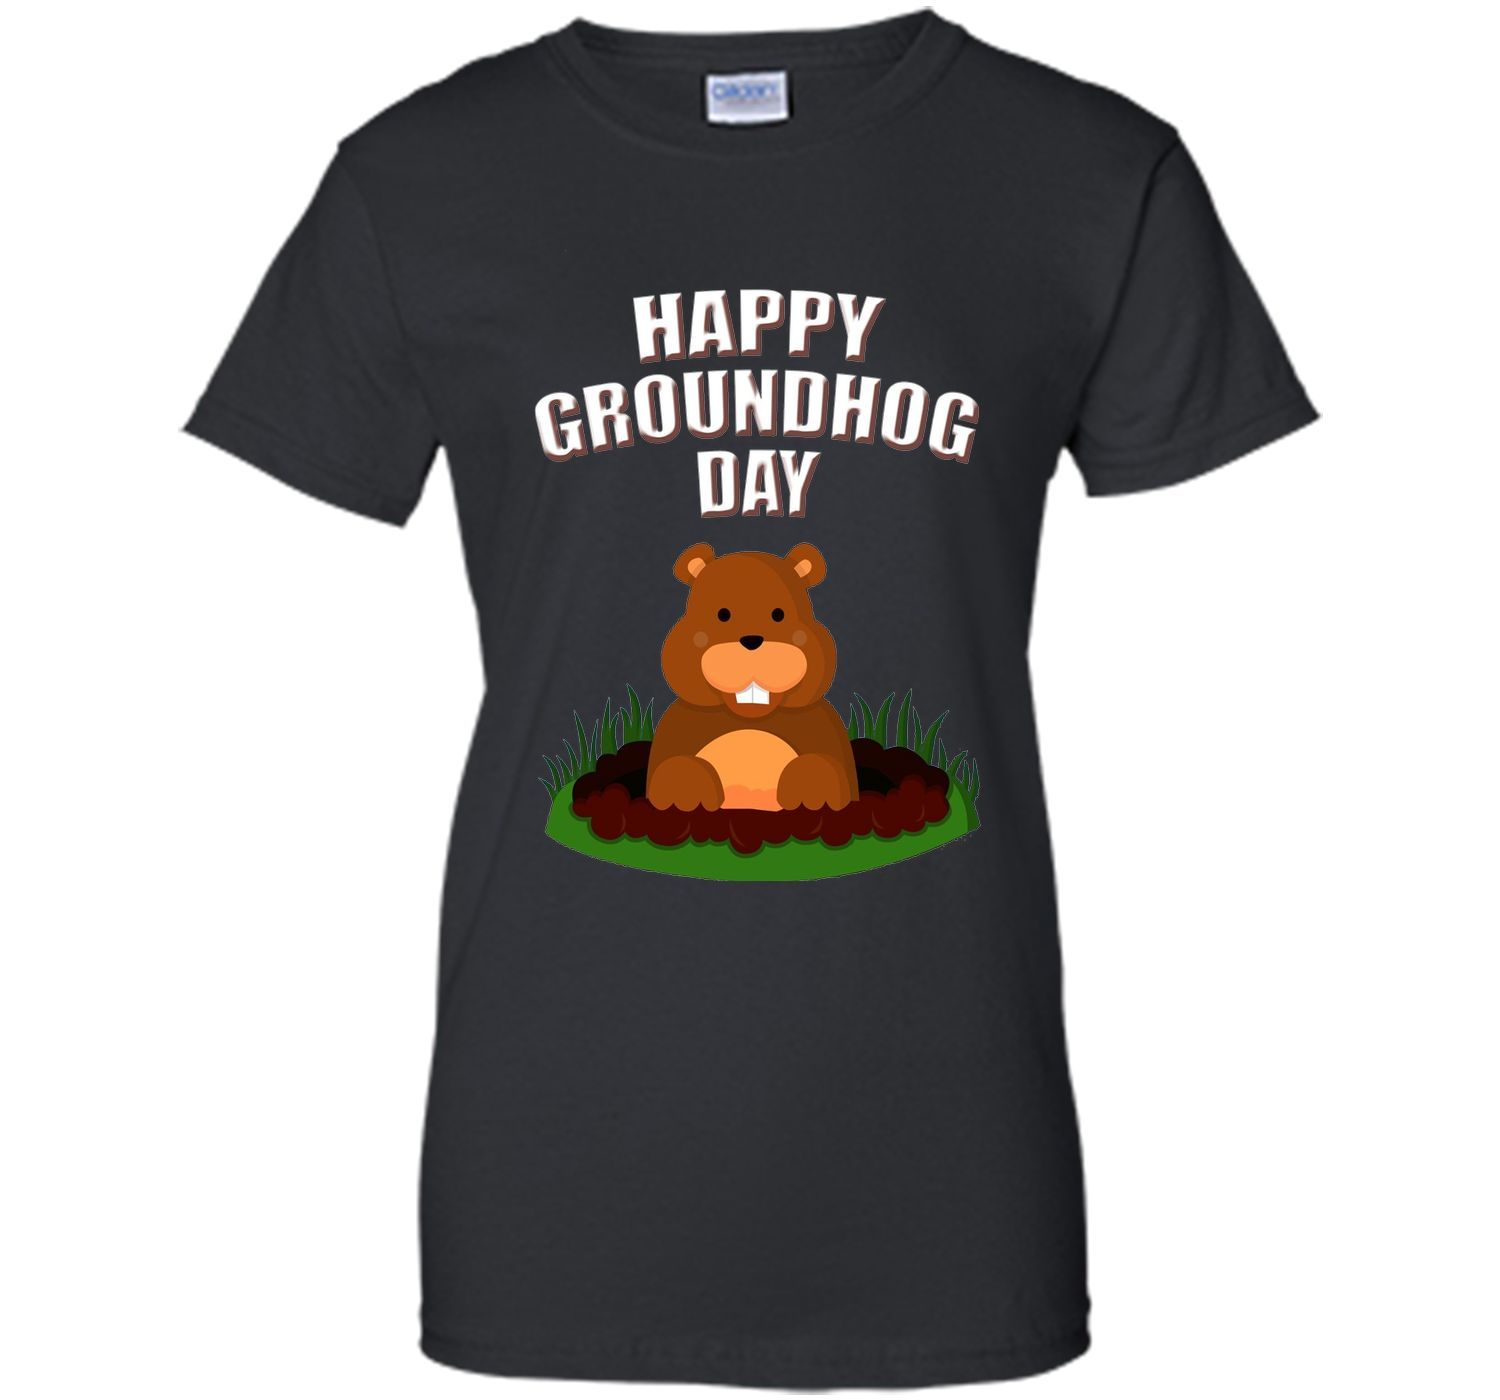 Groundhog Day T Shirt Happy Groundhog Day Products Pinterest